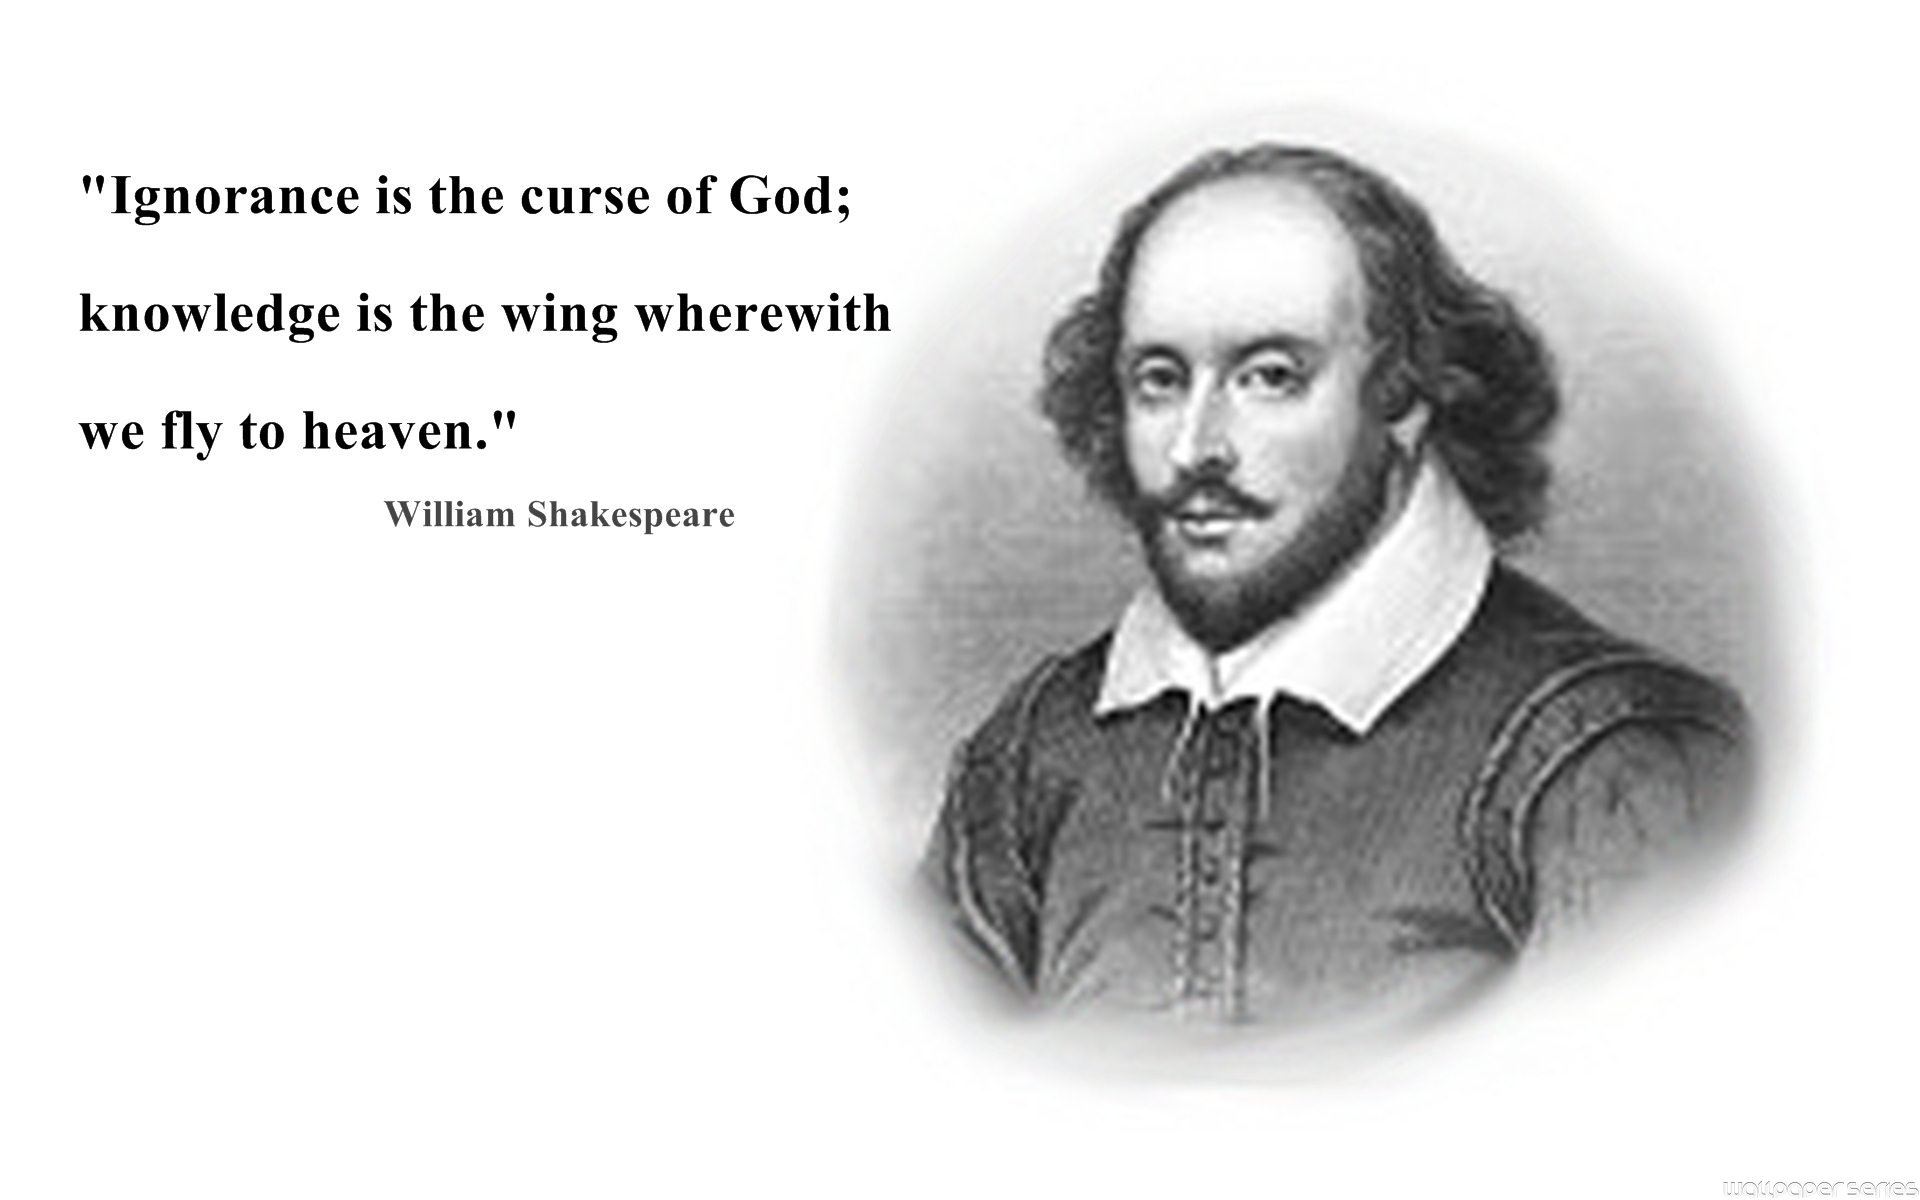 William Shakespeare wallpaper 1920x1200 65508 1920x1200